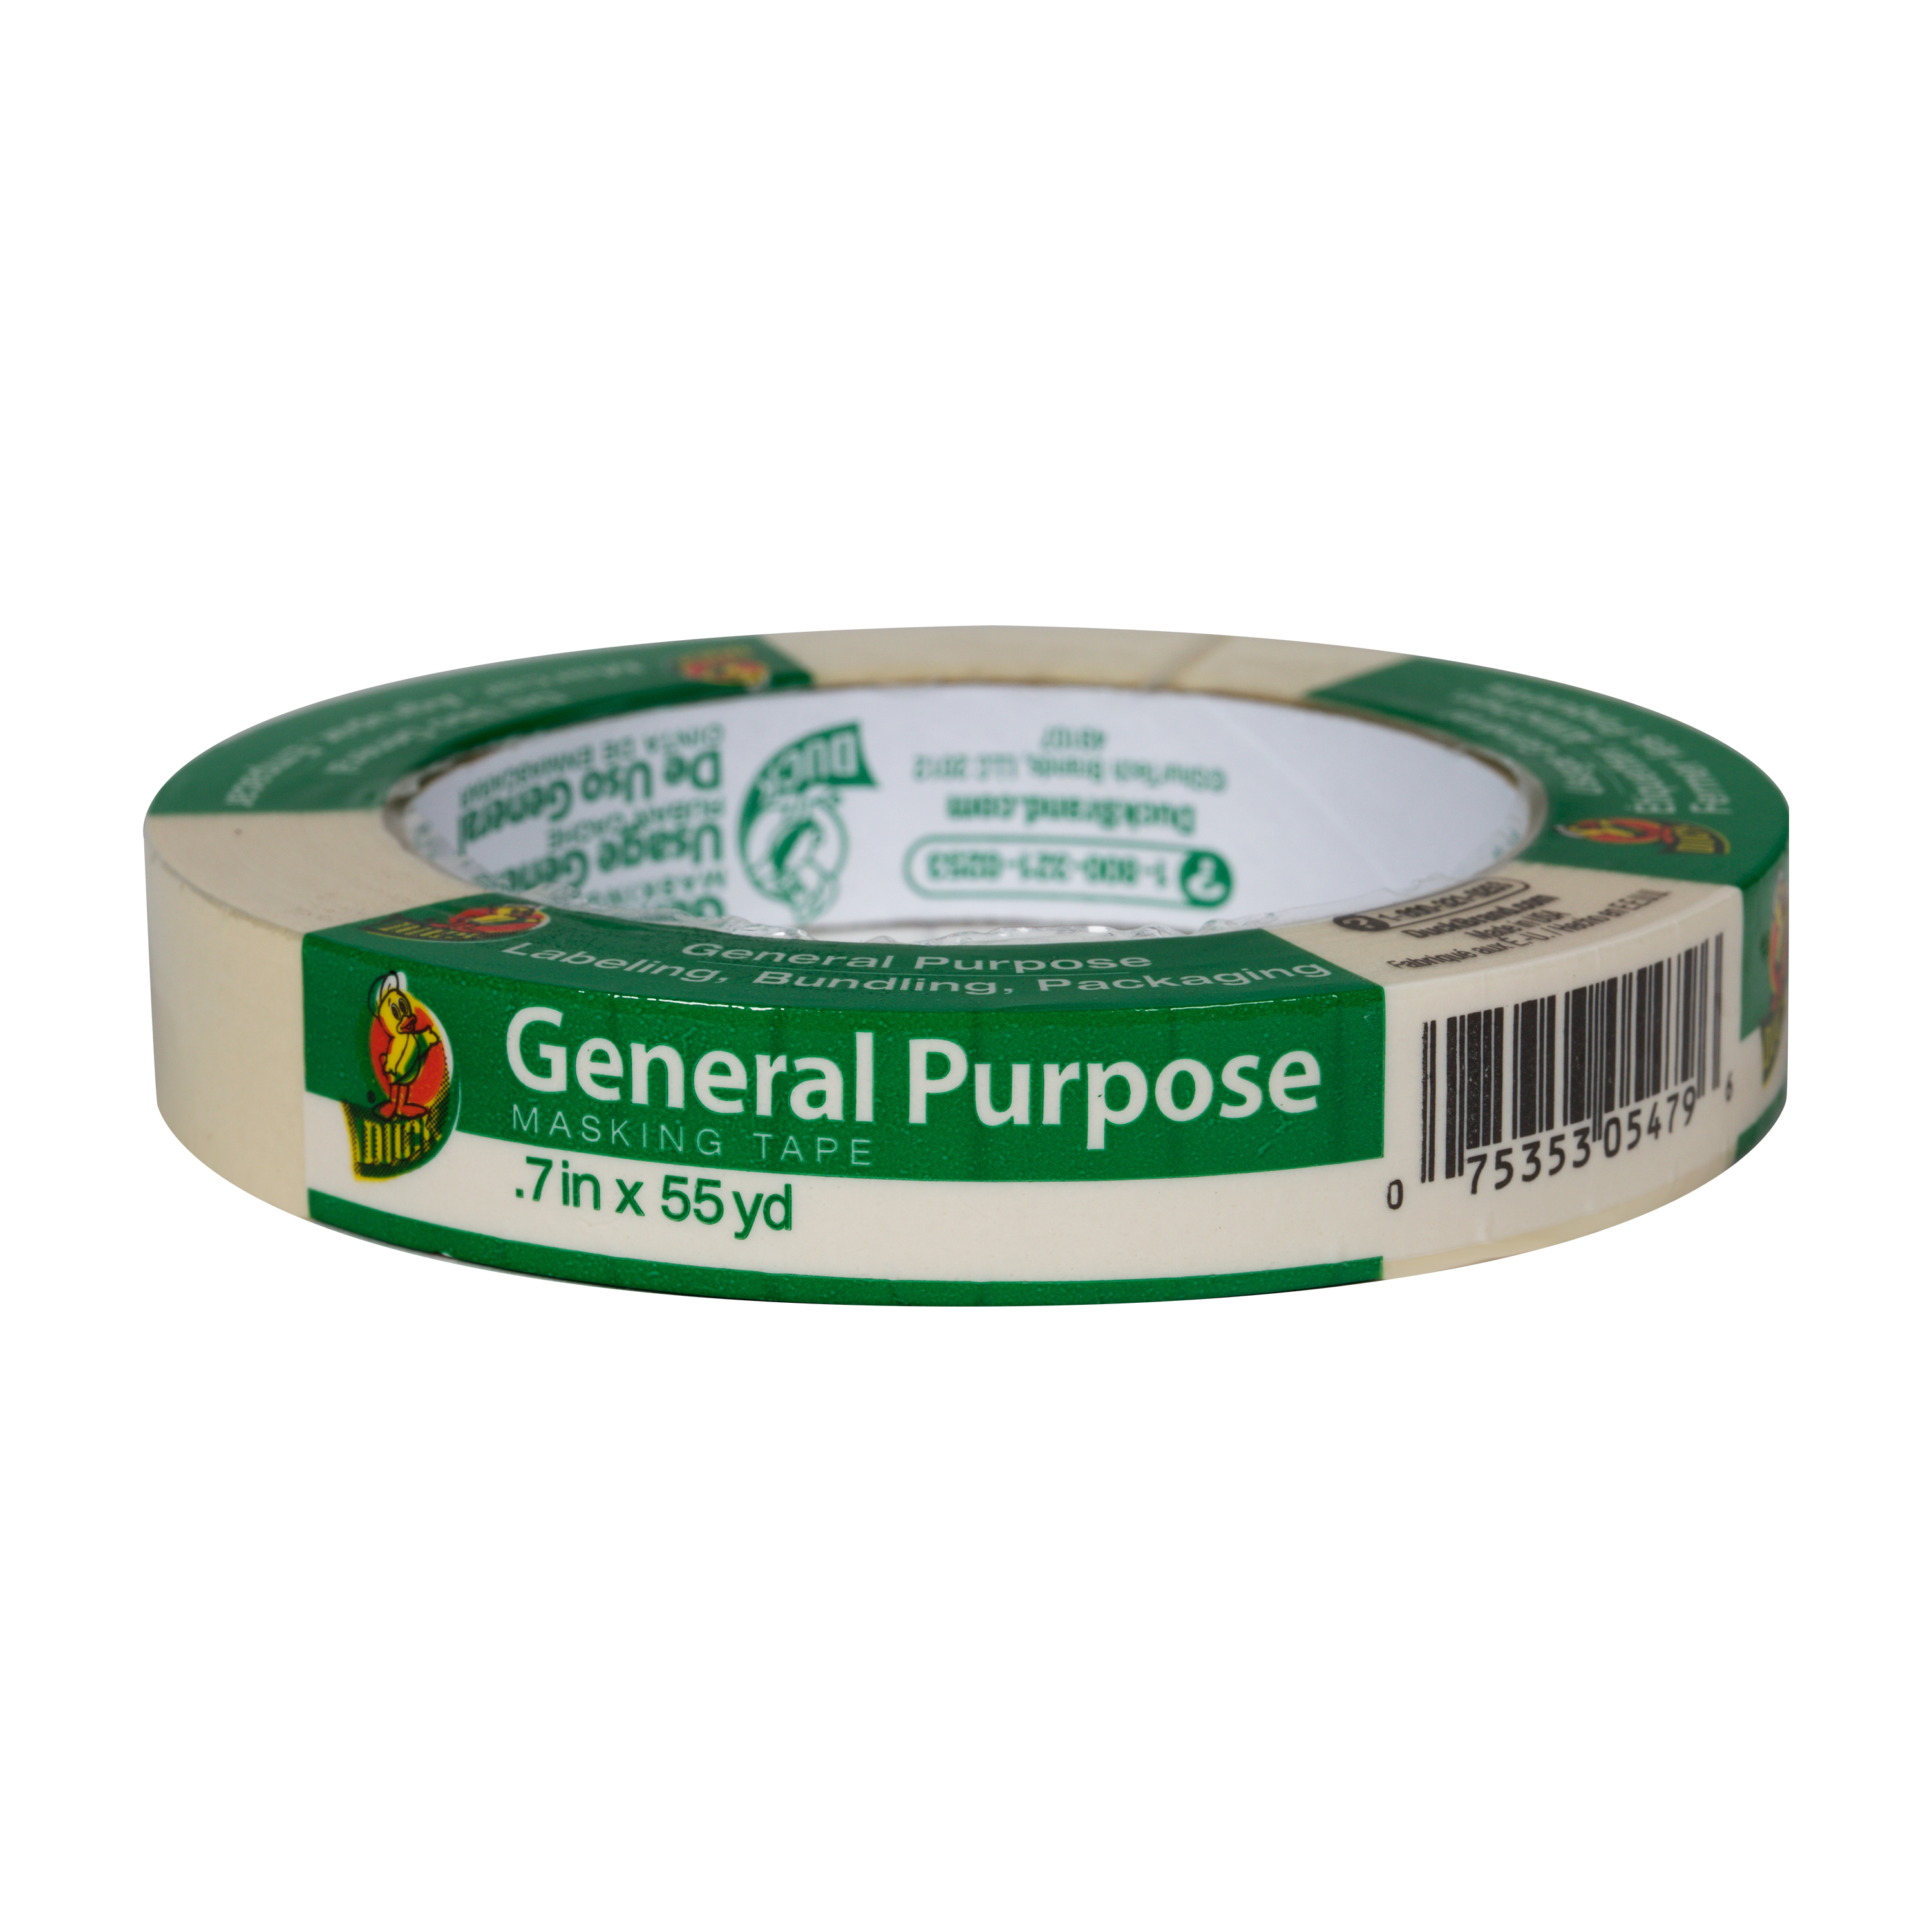 Duck Brand General Purpose Masking Tape - Beige, .7 in. x 55 yd.